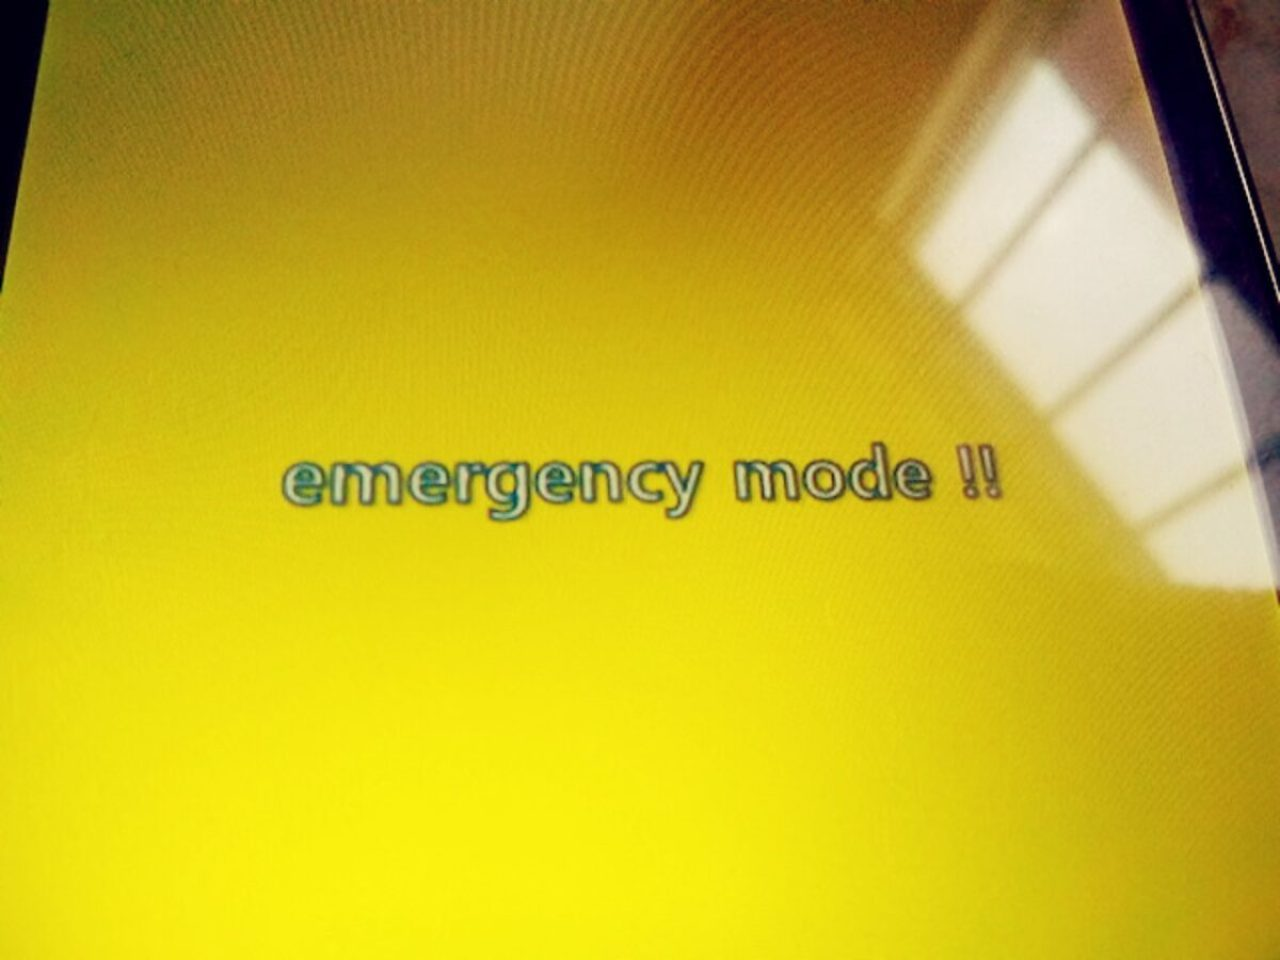 Emergency Mode LG